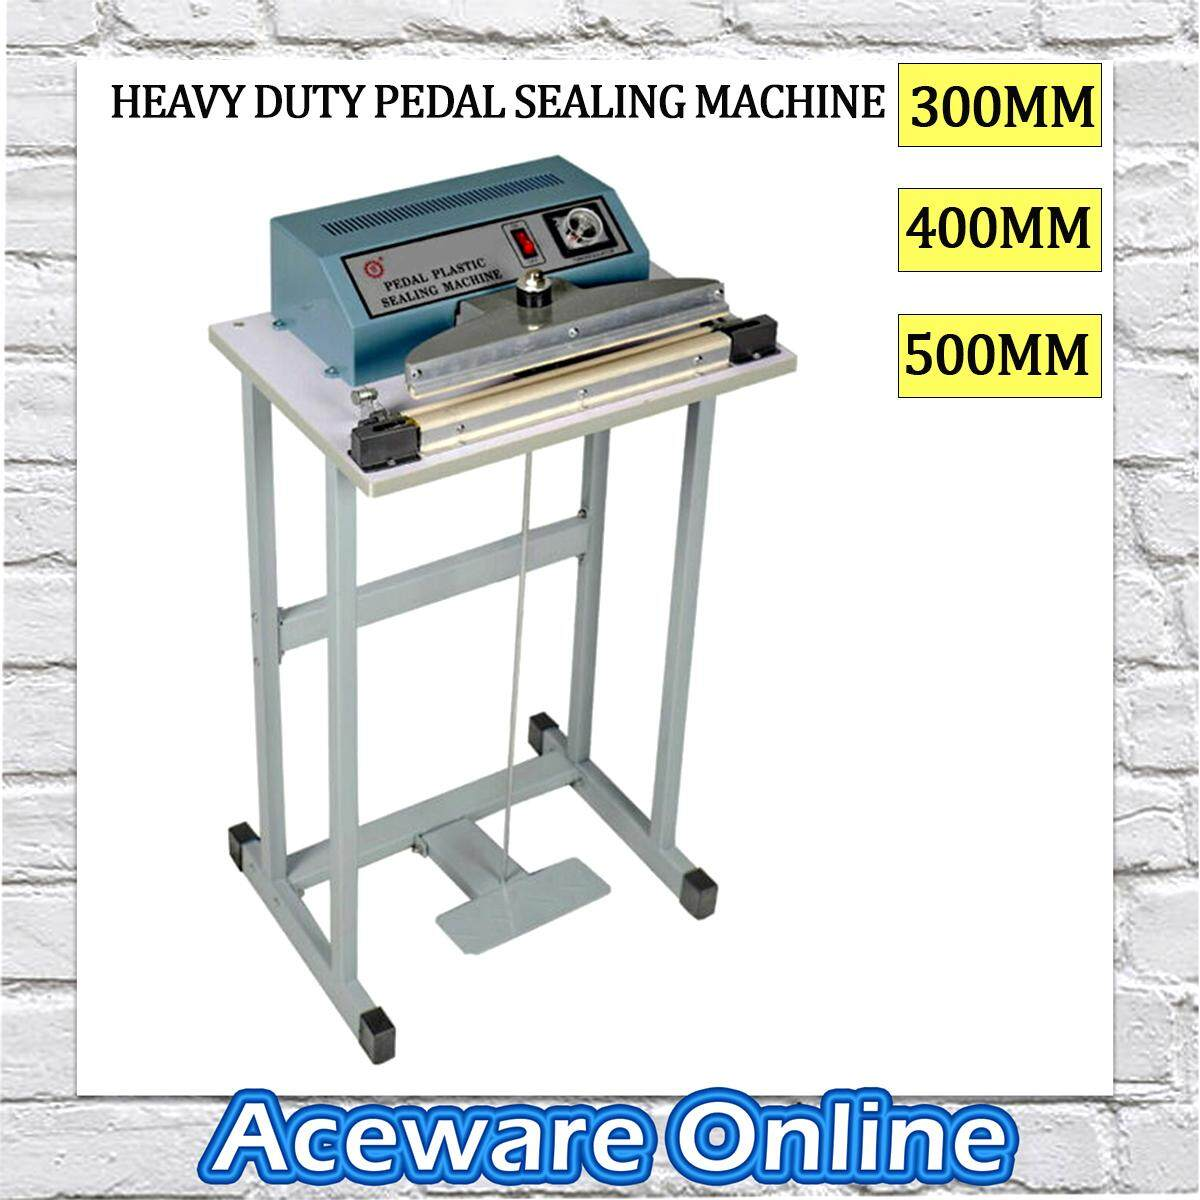 Step Sealer Machine Impulse Foot Sealer Pedal Machine Vertical Sealing Type Quick Packing In 3 Sizes For Industrial and Non-Industrial